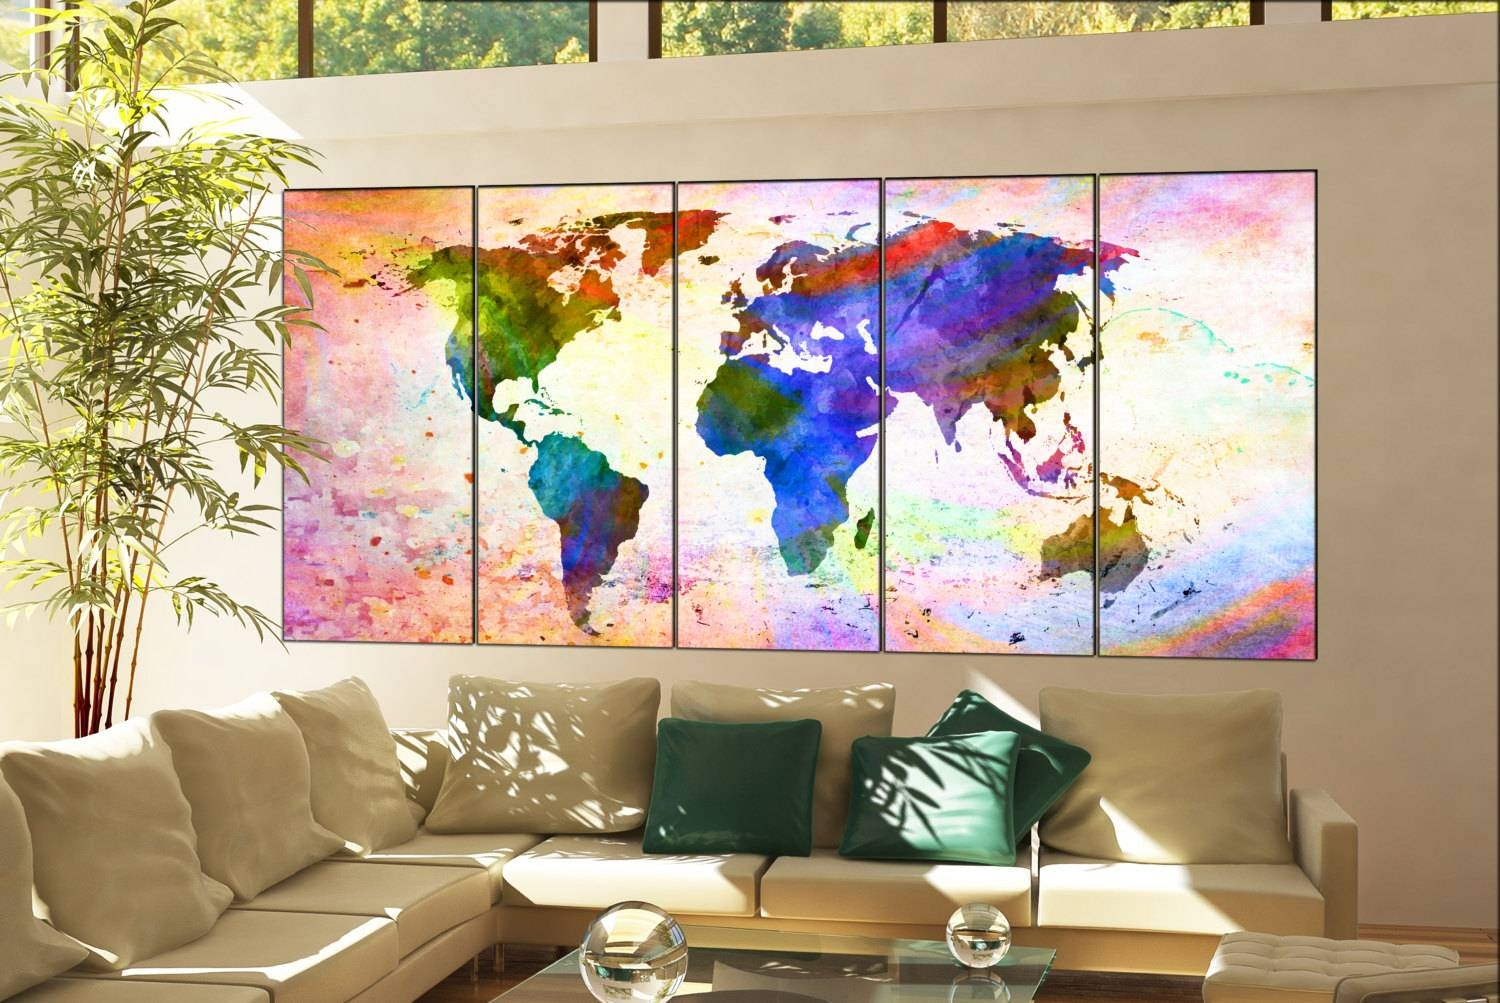 Wall Art World Map Print On Canvas Wall Art Wall Art World Map Within Current World Map Wall Artwork (View 6 of 20)